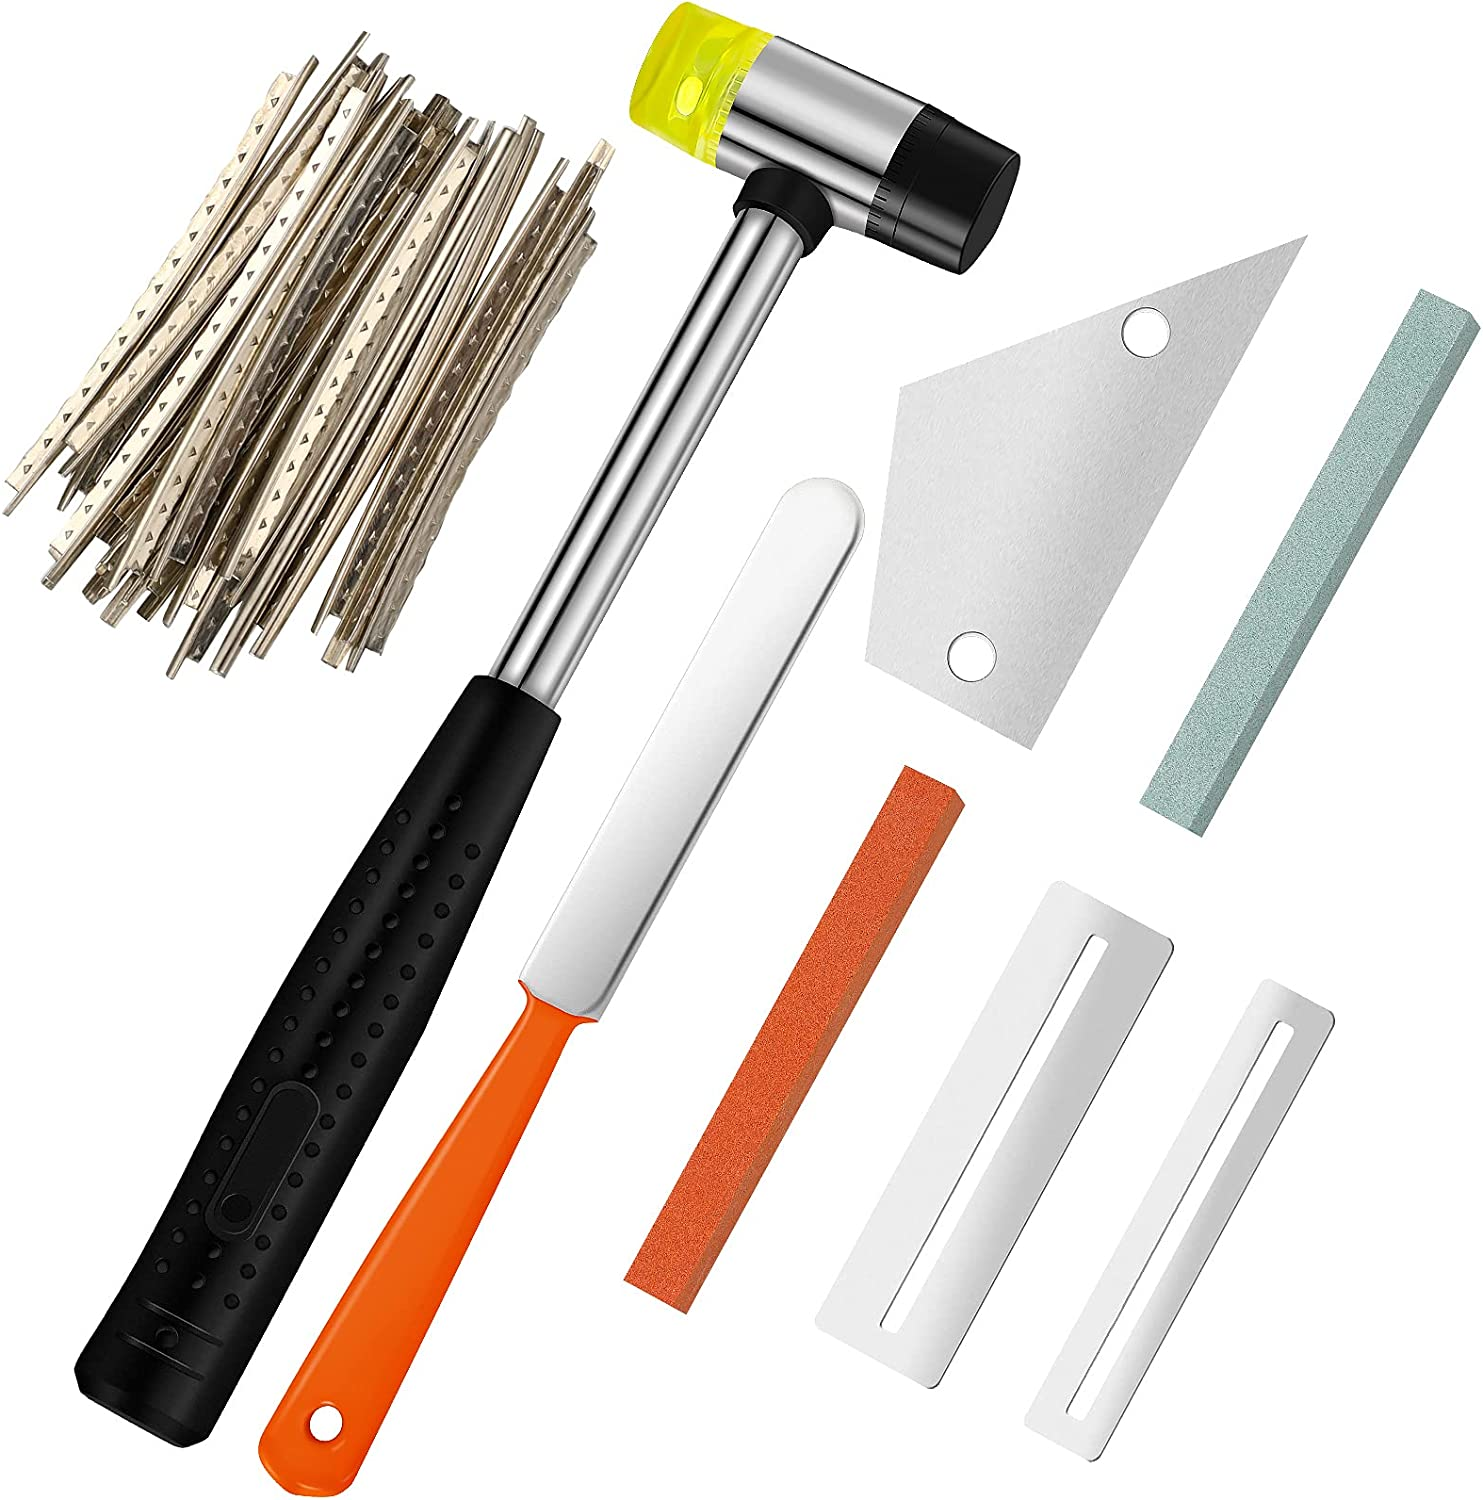 Guitar Luthier Tool Kit Include Guitar Fret Crowning File, Dual-Head Guitar Bass Fret Wire Rubber Hammer, 2 Fingerboard Guard Protectors, 2.2 mm Steel Guitar Fret Wires, Grinding Stone and Fret Rocker